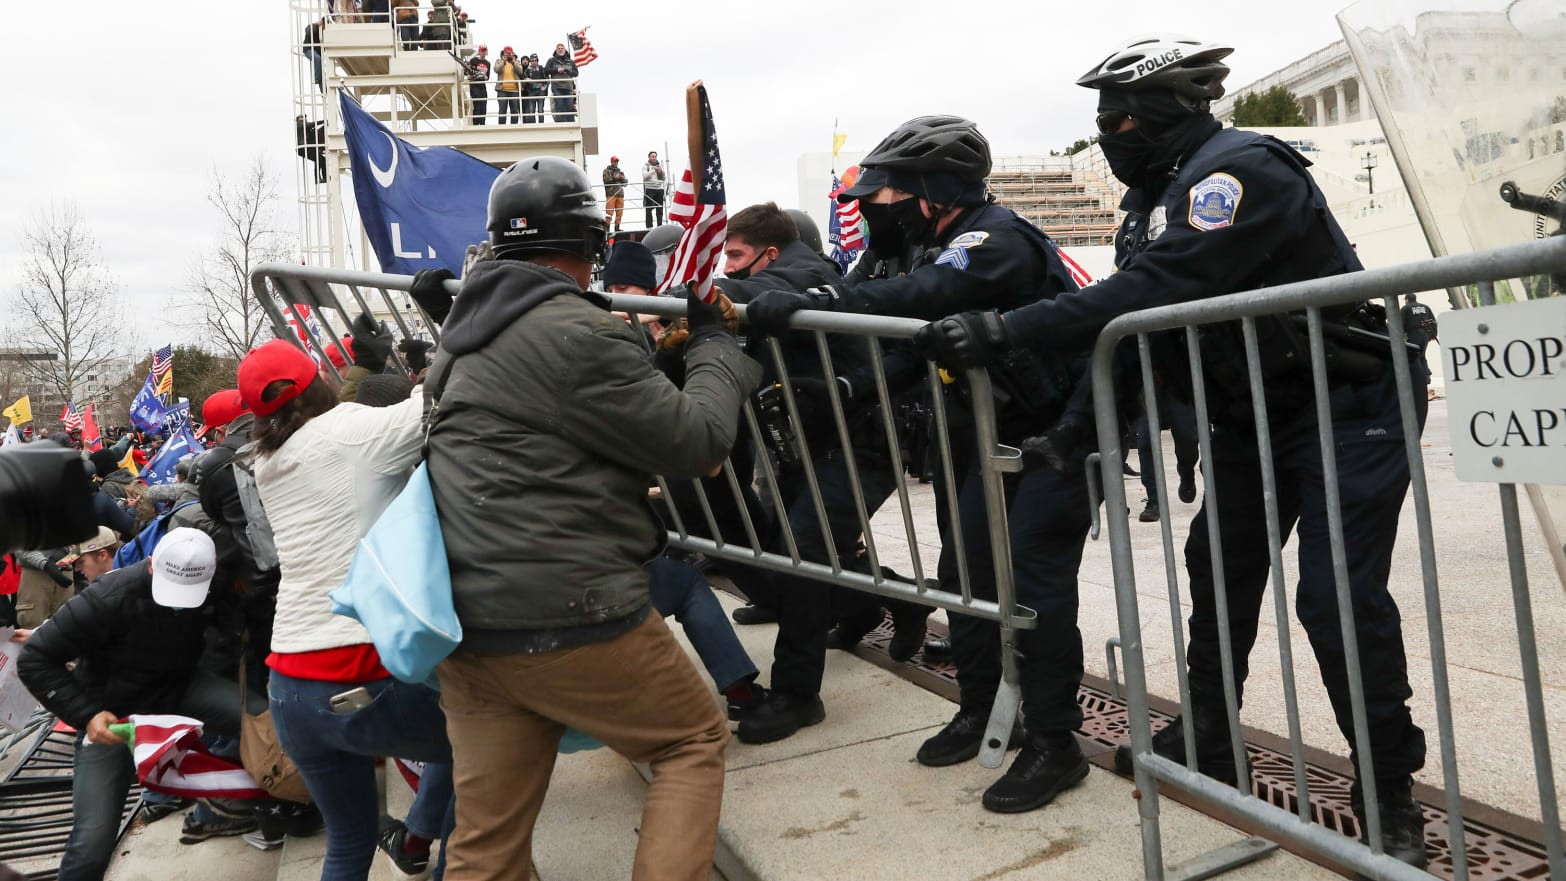 Donald Trump supporters clash with police as they attempt to gain access to the U.S. Capitol building ahead of Joe Biden's election certification (Watch videos)